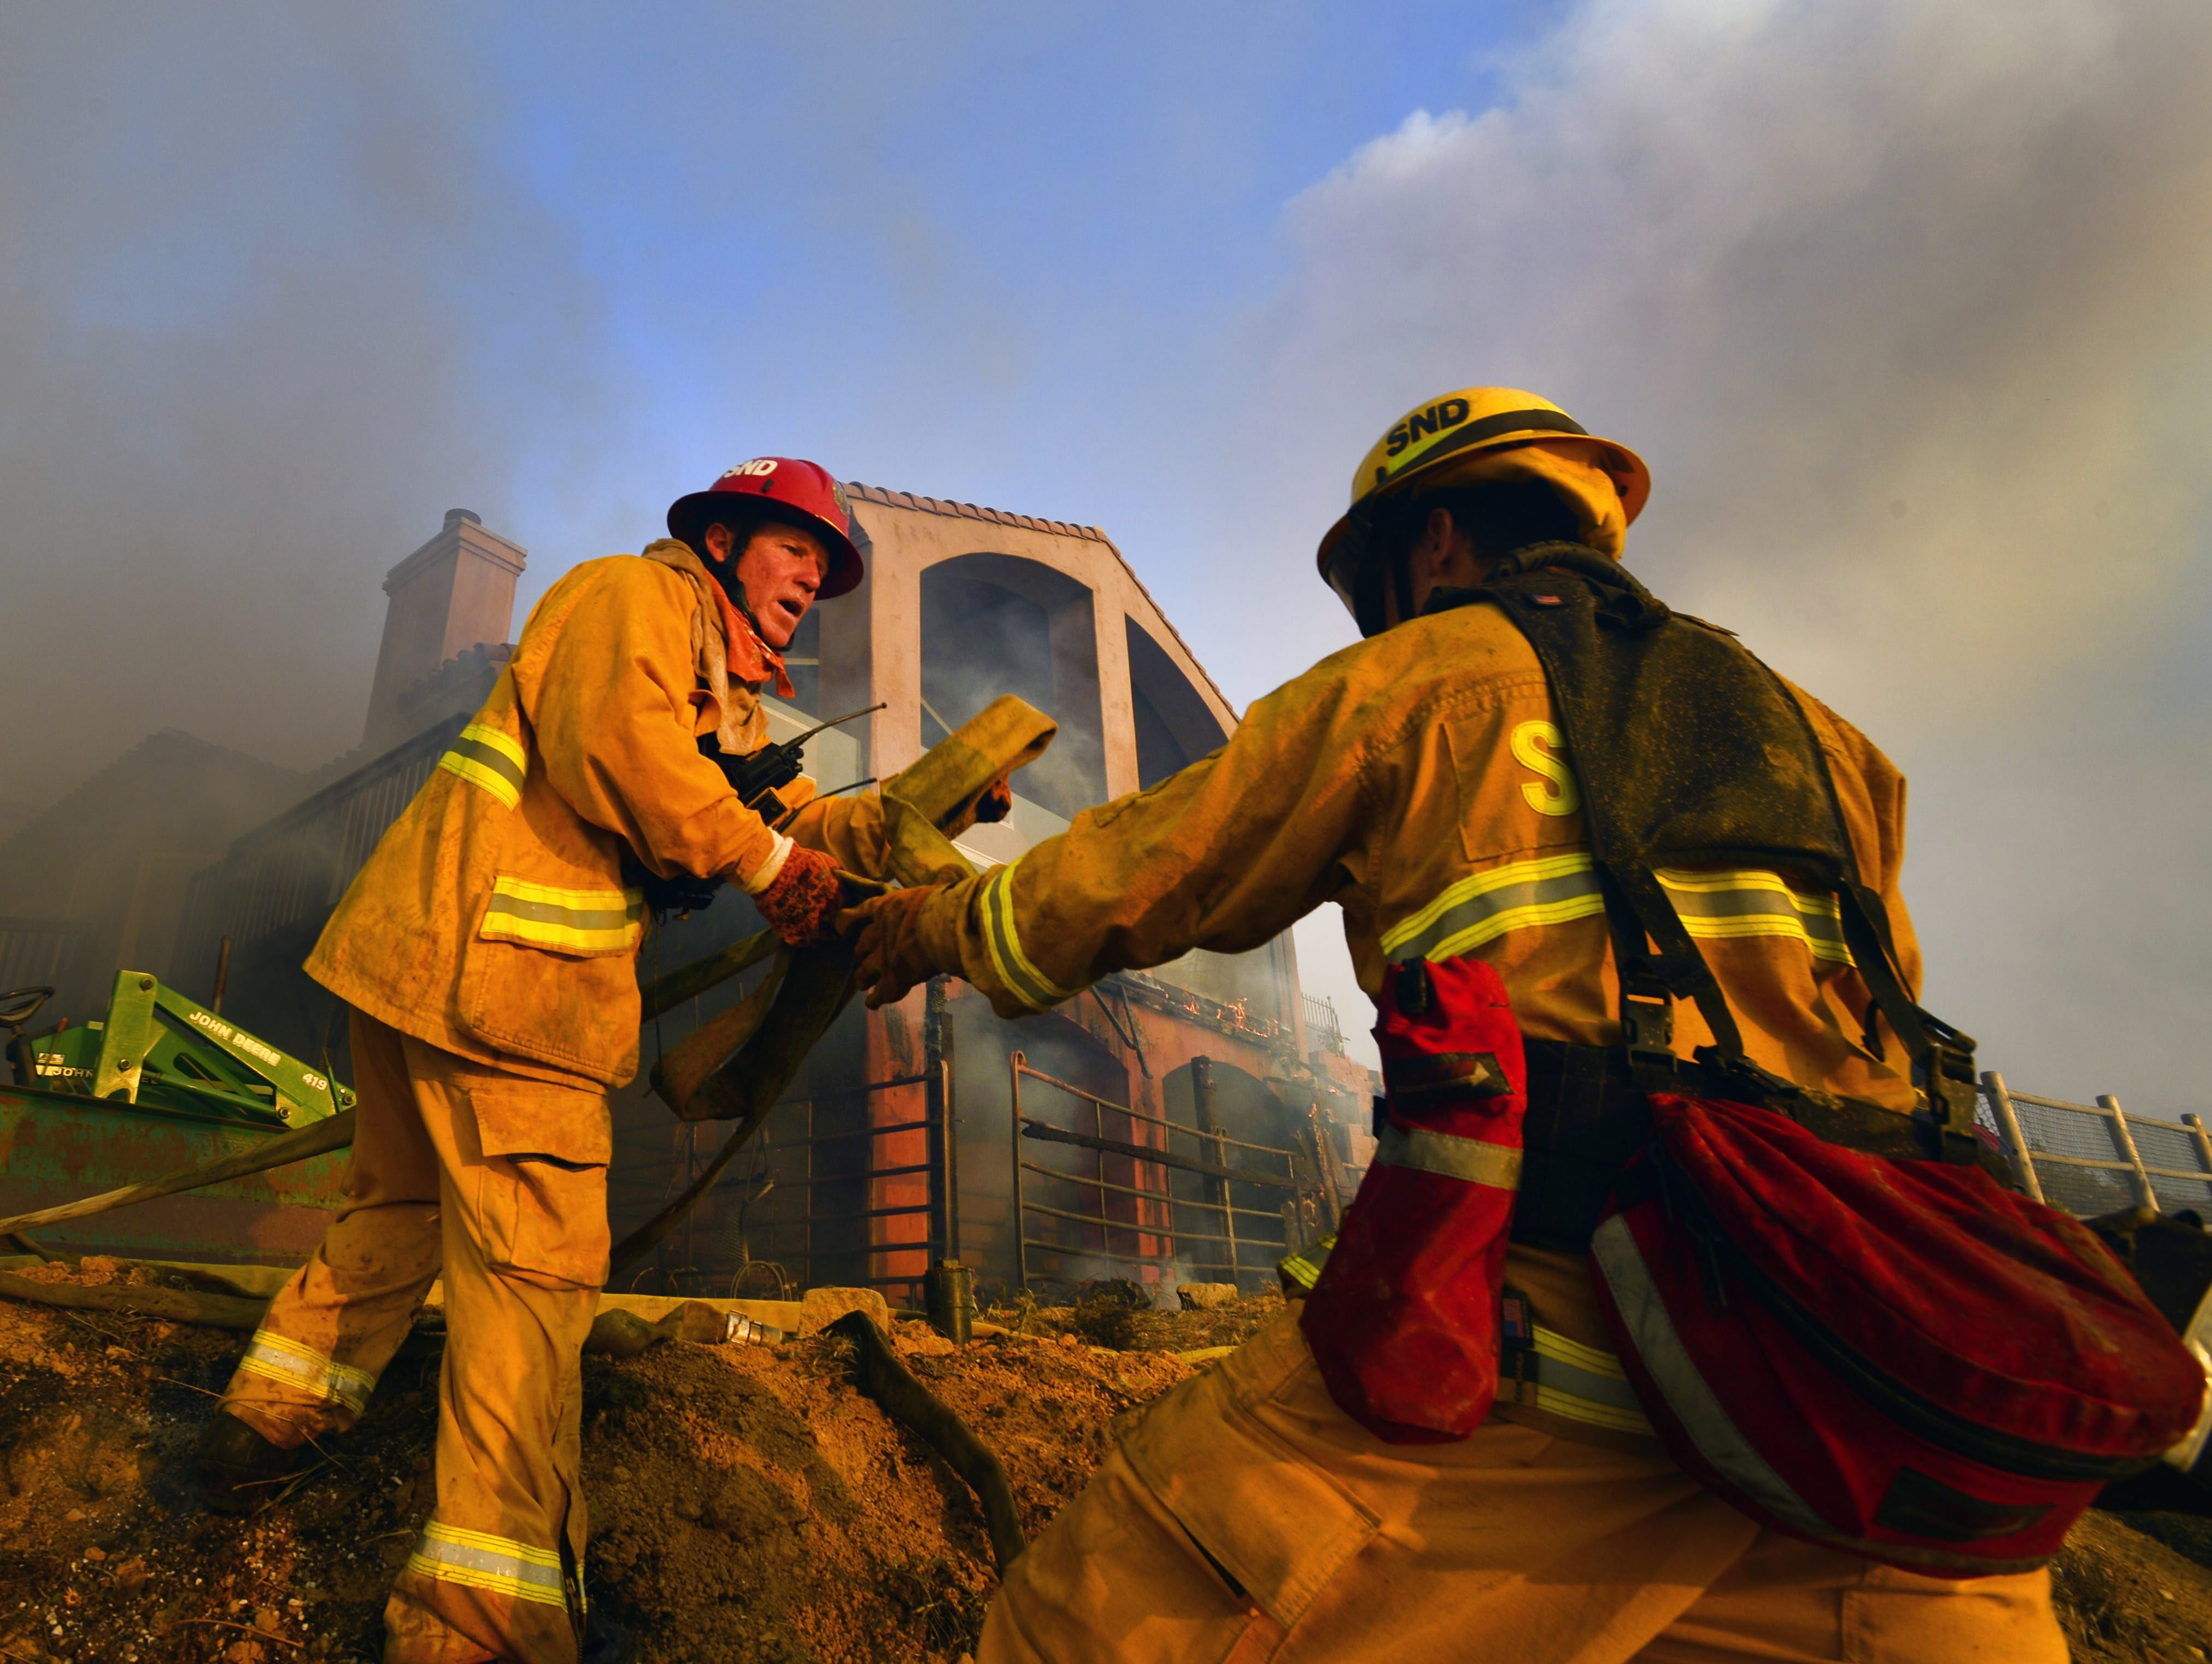 Firefighters work to set up a hose as the porch of a home burns in San Marcos, in the San Diego county on May 14, 2014.